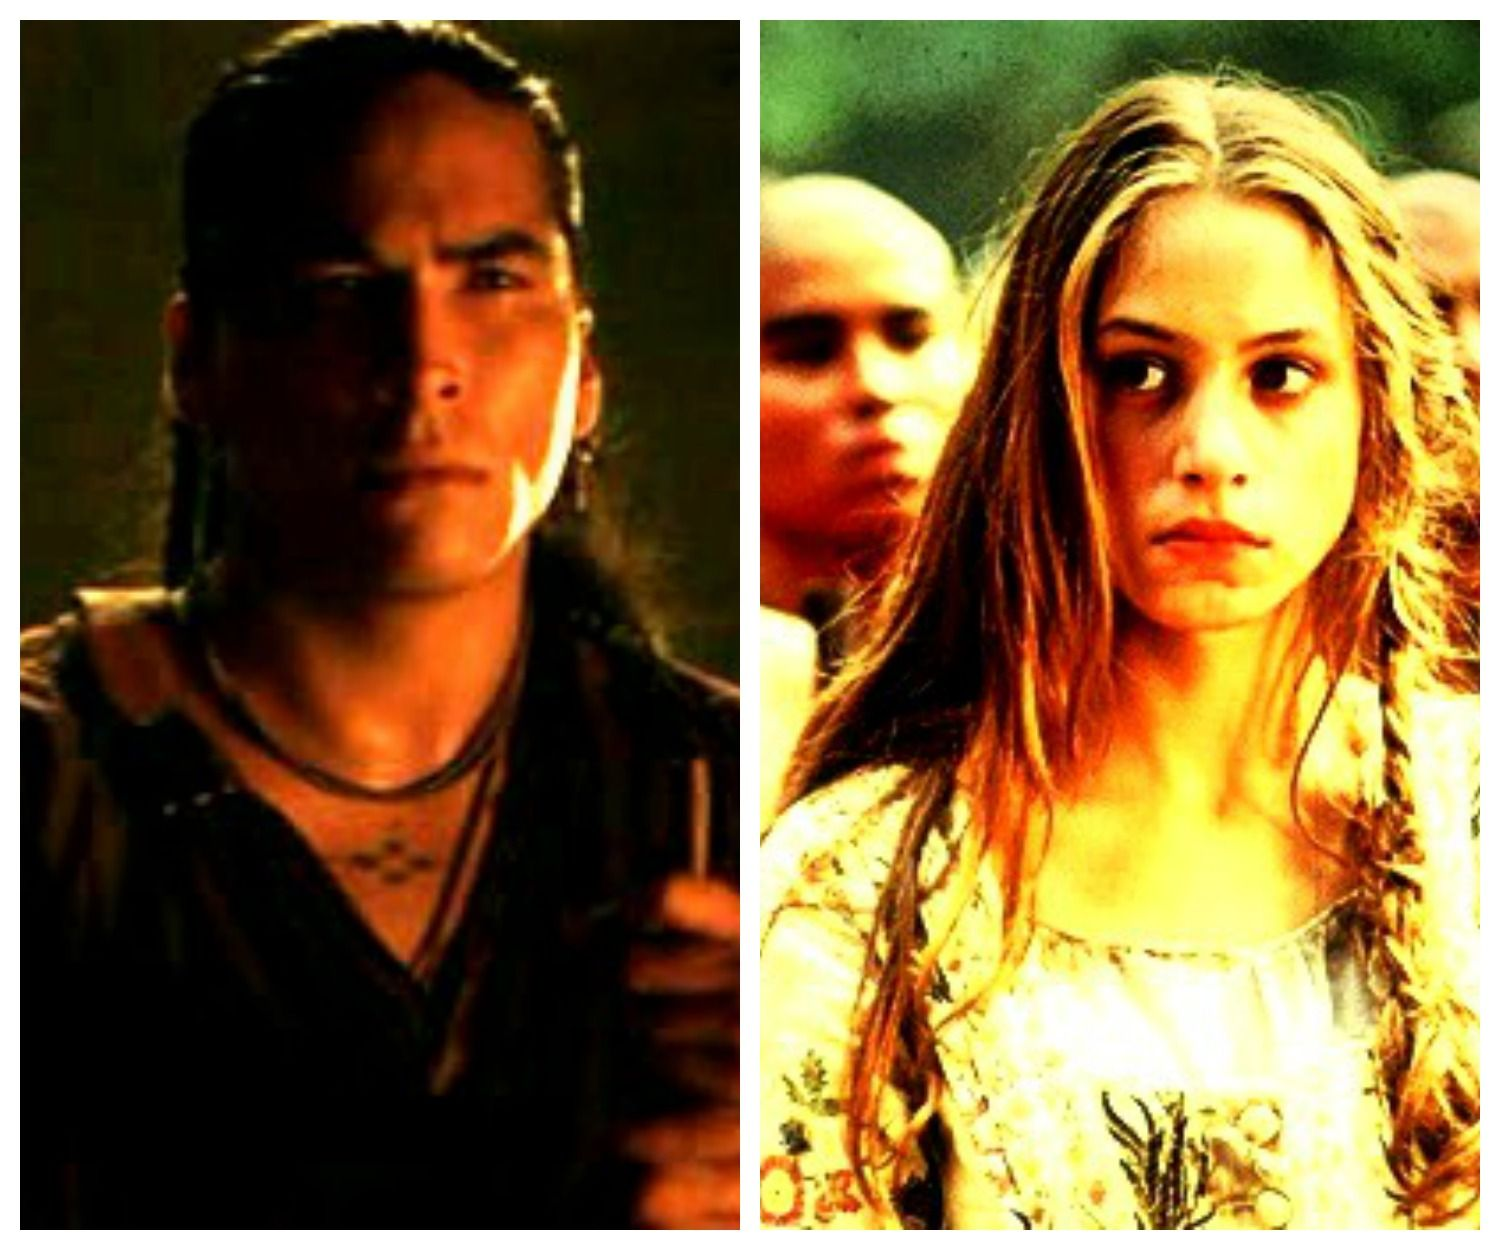 Uncas Alice The Last Of The Mohicans Native American Actors Eric Schweig Great Love Stories The last of the meheecans is the ninth episode of the fifteenth season of the american animated television series south park, and the 218th episode of the series overall. uncas alice the last of the mohicans